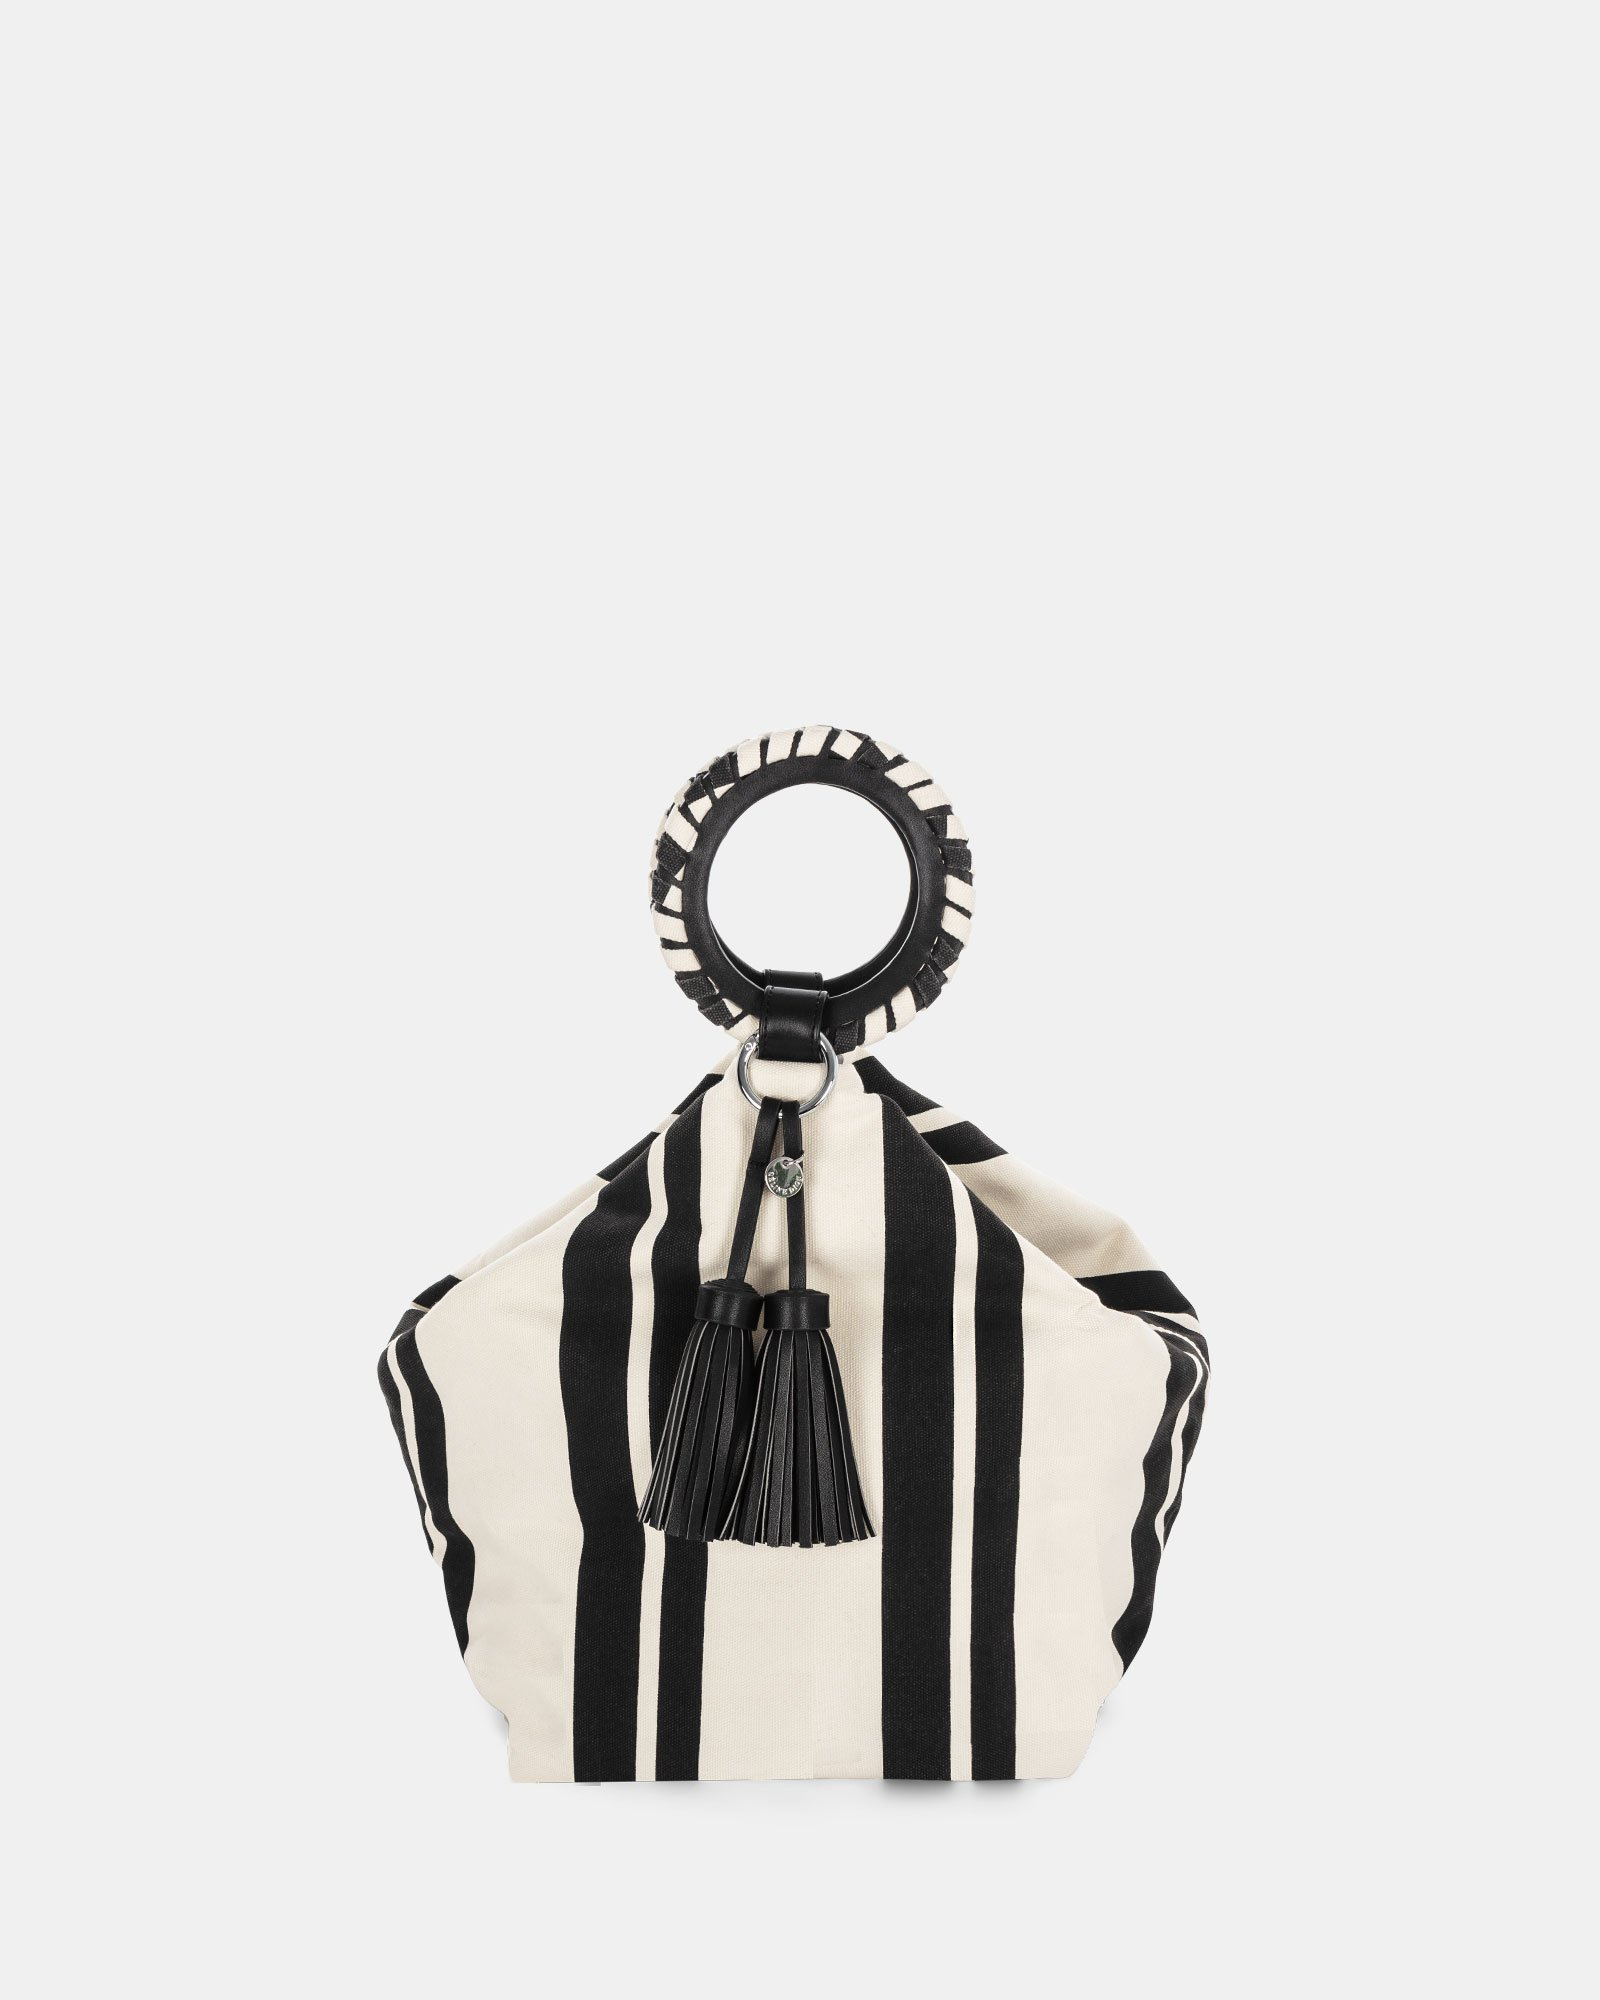 Svelto - Handle bag with zippered pocket and multiple organizational pockets - Black/stripe - Céline Dion - Zoom